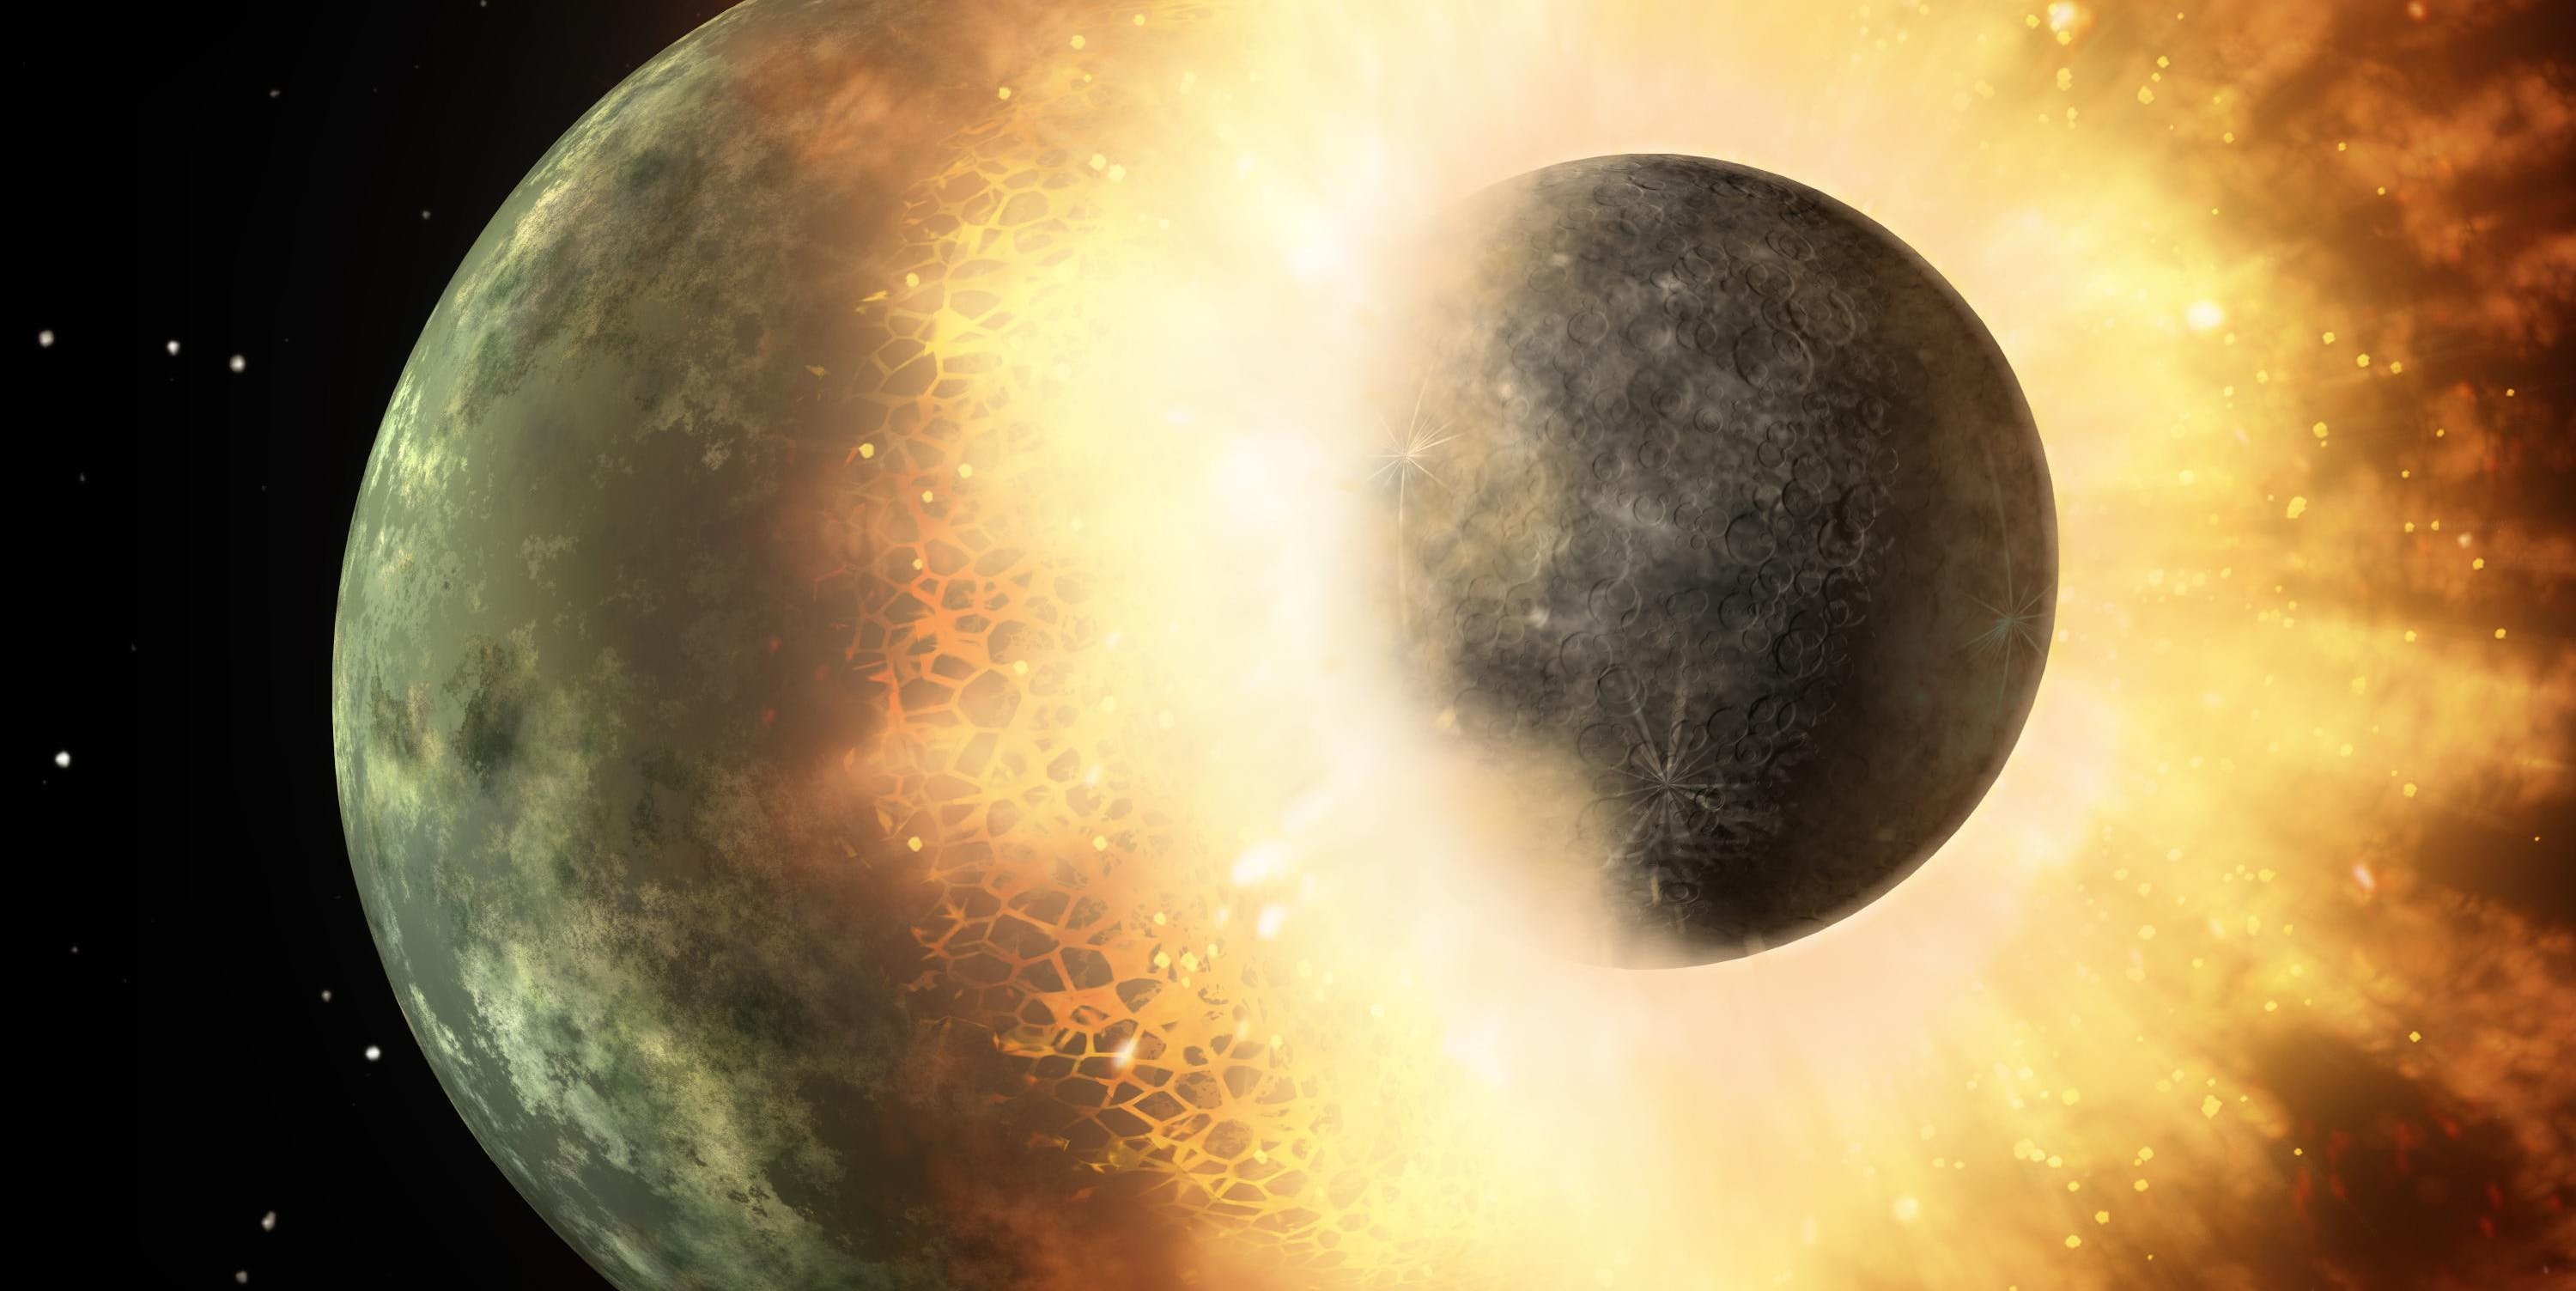 Illustration of an object about the size of the Moon, colliding into a planet